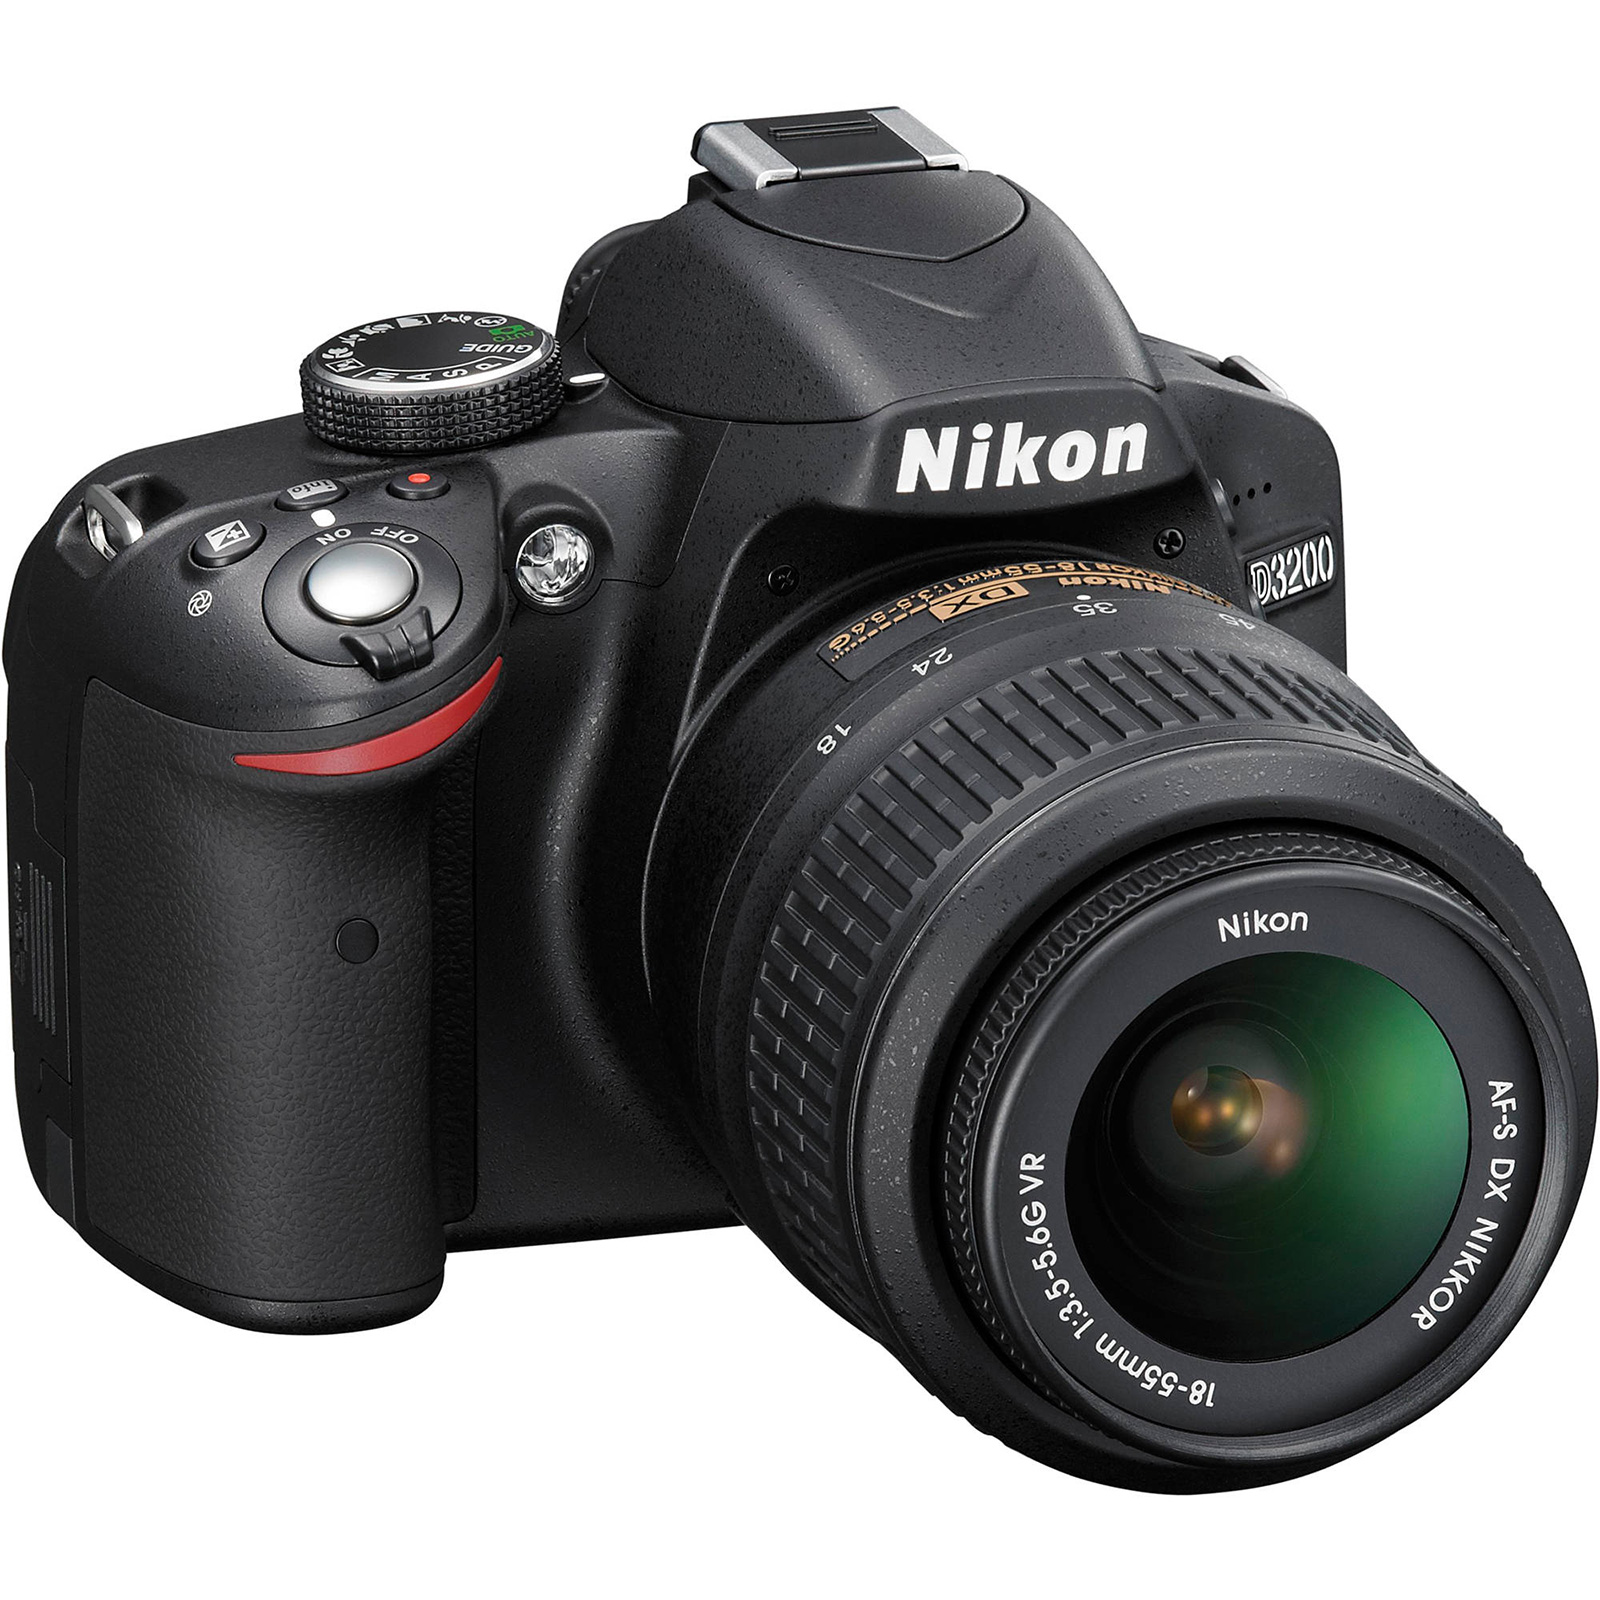 Nikon D3200 Digital SLR Camera & 18-55mm VR DX AF-S Zoom Lens (Black) -Factory Refurbished includes Full 1 Year Warranty